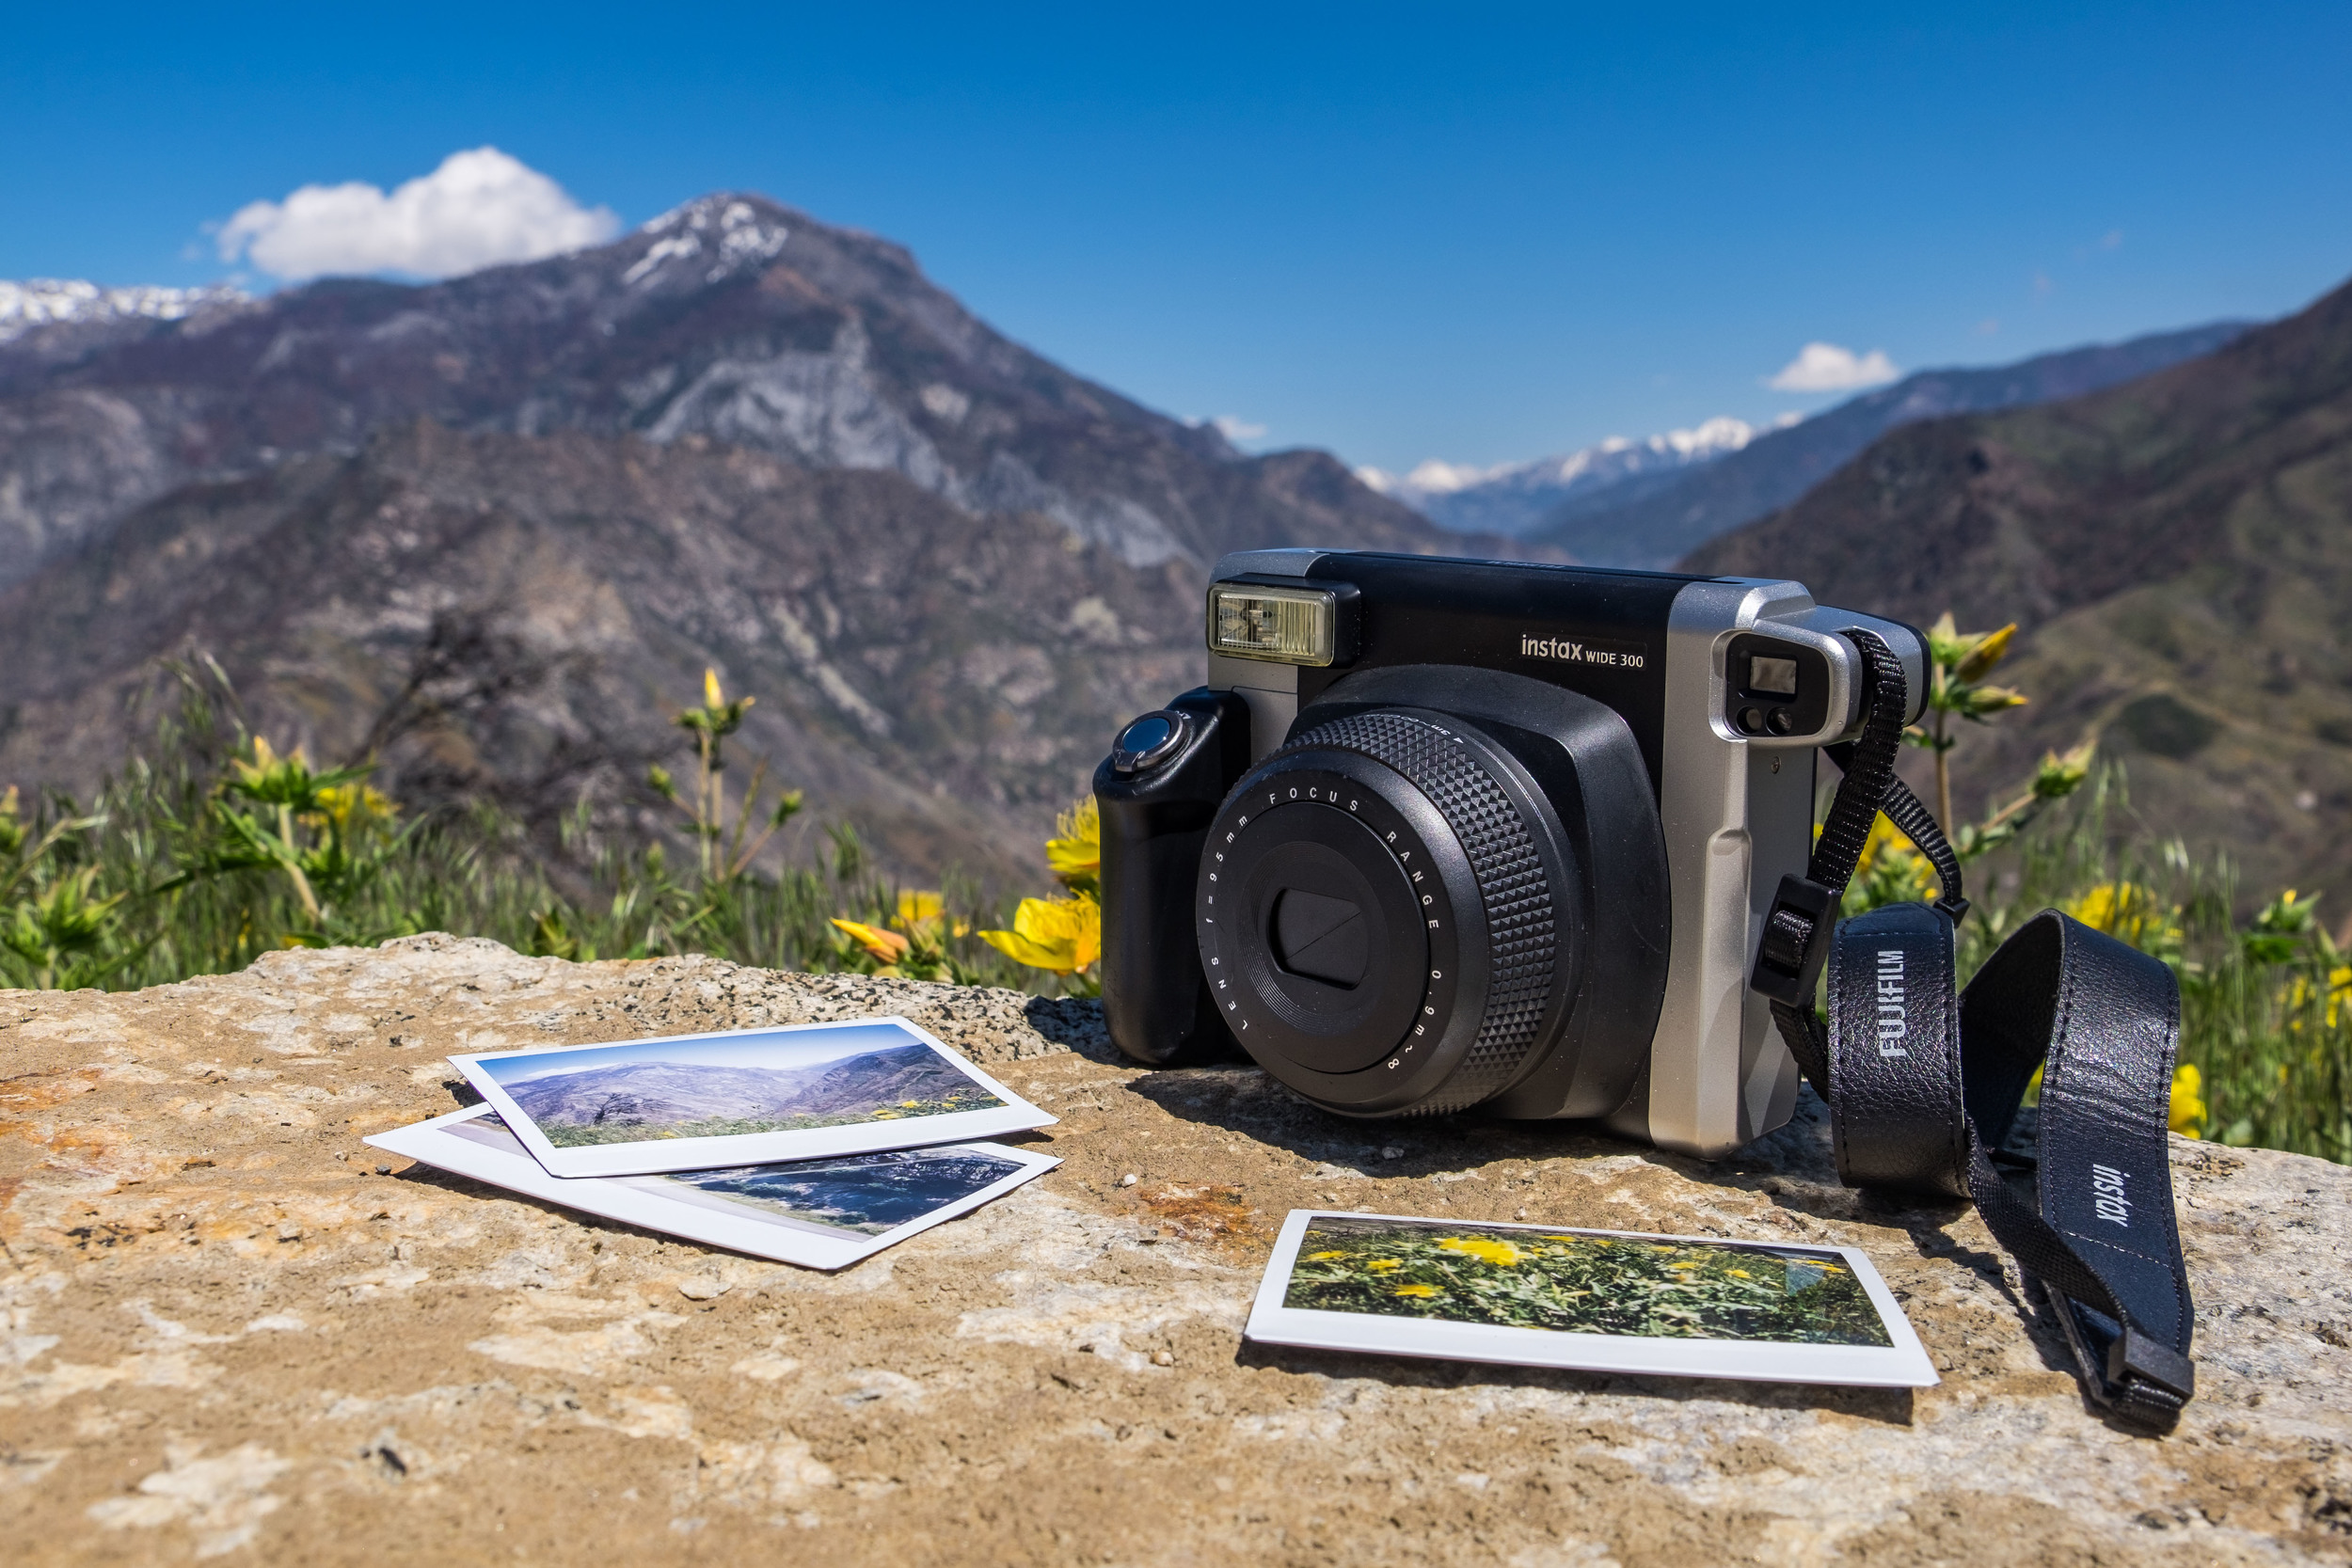 Having a day with the Fujifilm Instax Wide 300 in Kings Canyon National Park in California.